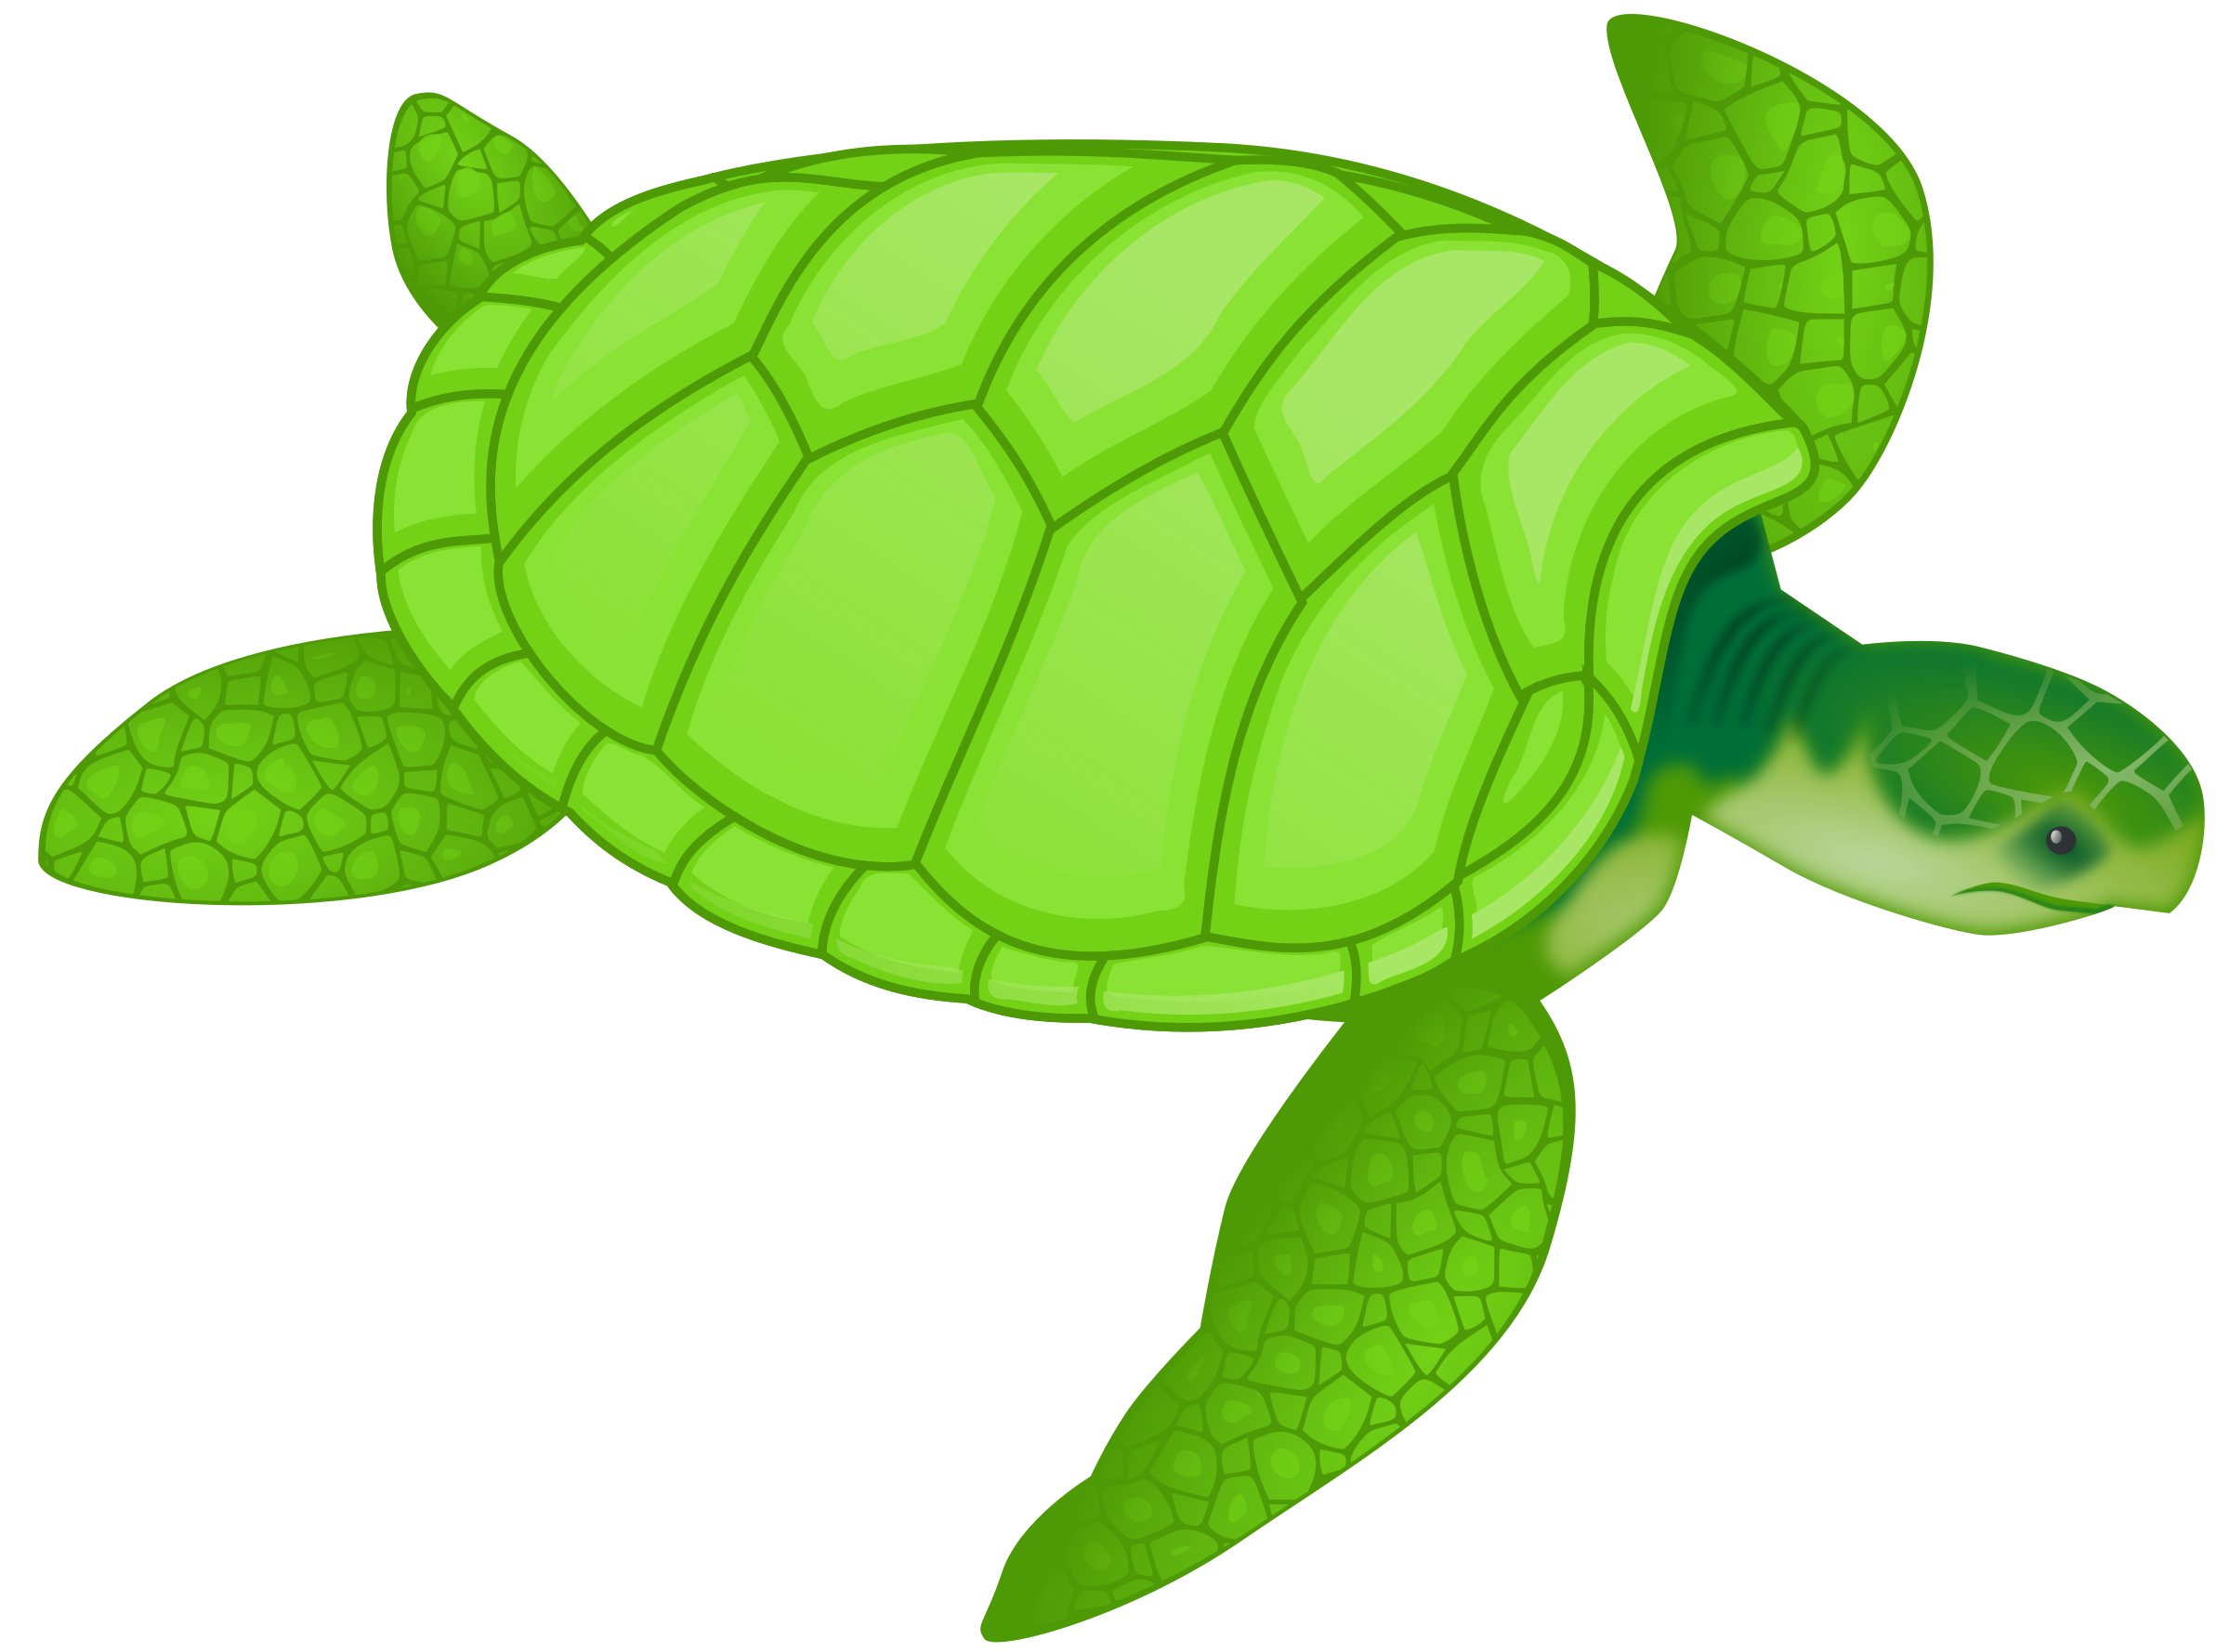 Green sea turtle by valessiobrito